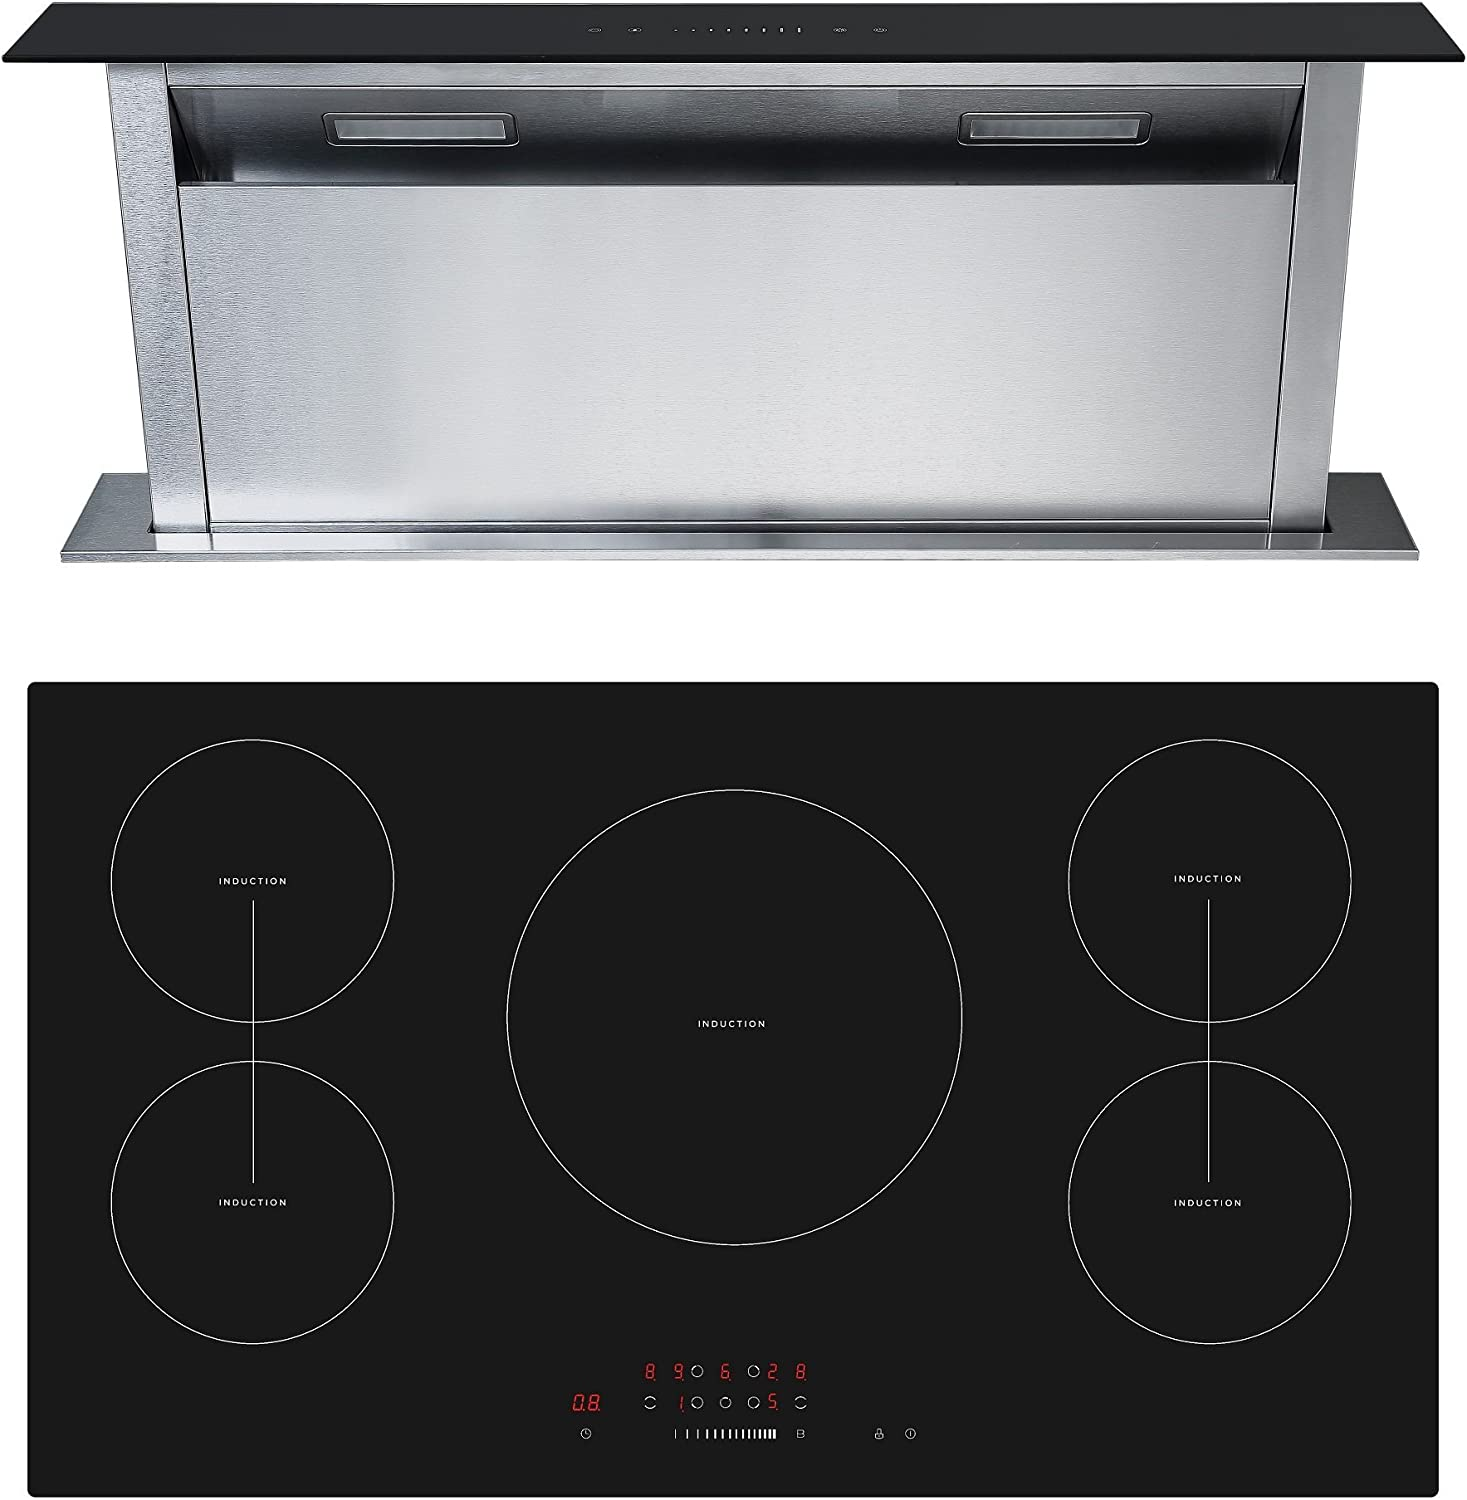 Cookology Cit901 Cdd900bk 90cm Induction Hob Downdraft Extractor Fan Pack Amazon Co Uk Large Appliances